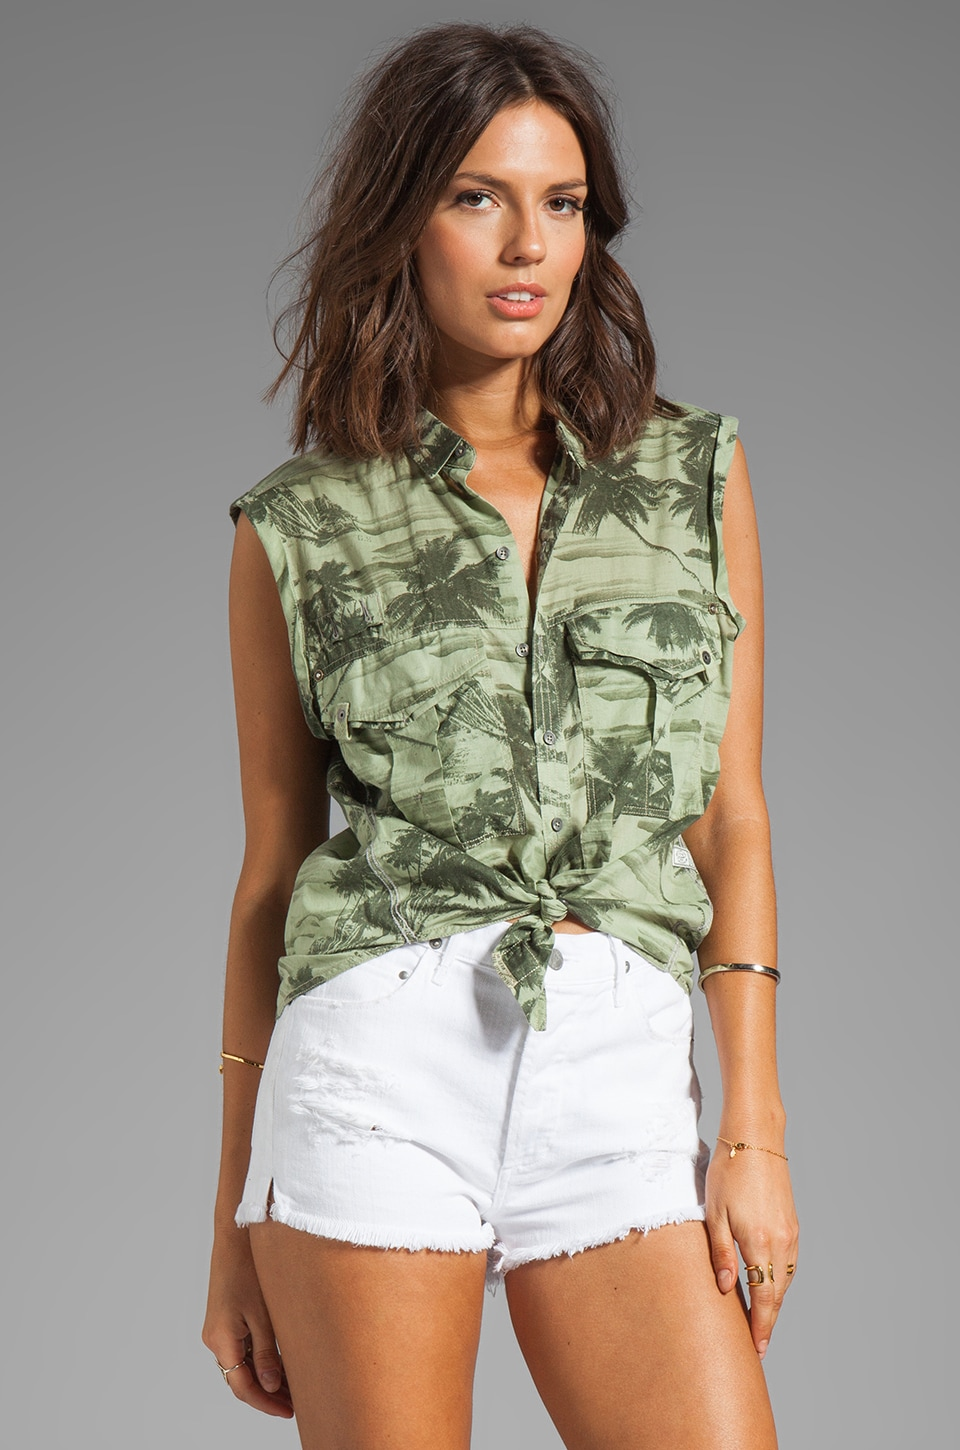 G-Star Beach Rovic Camo Boyfriend Shirt in Spring Green